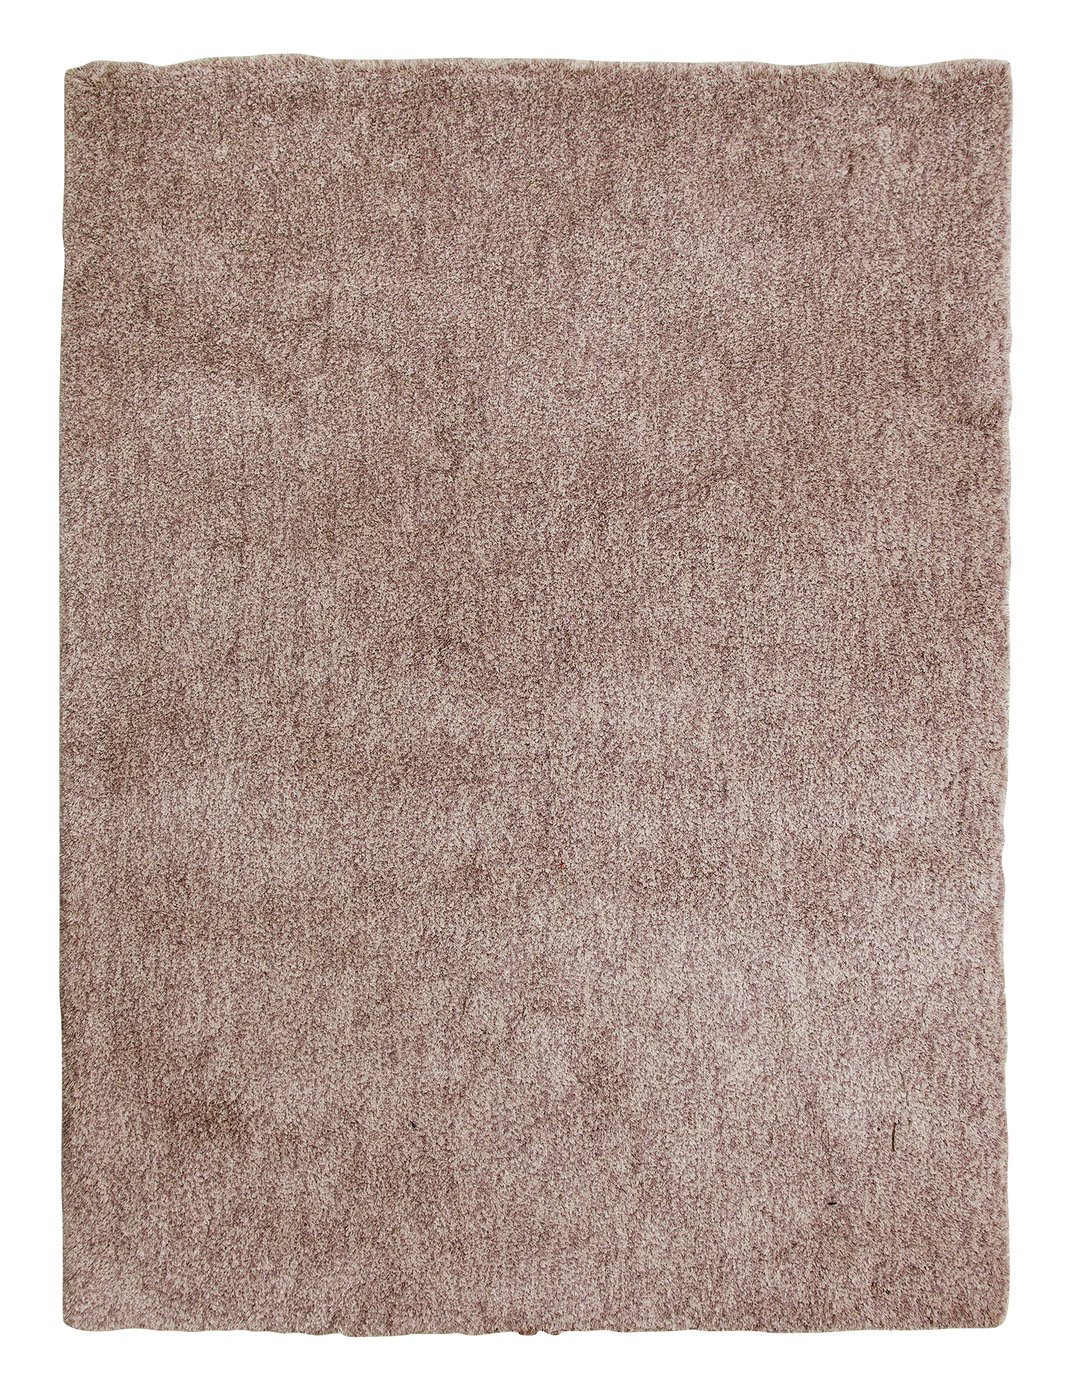 Argos Home Supersoft Multi-Tone Rug - 230x160cm - Biscuit